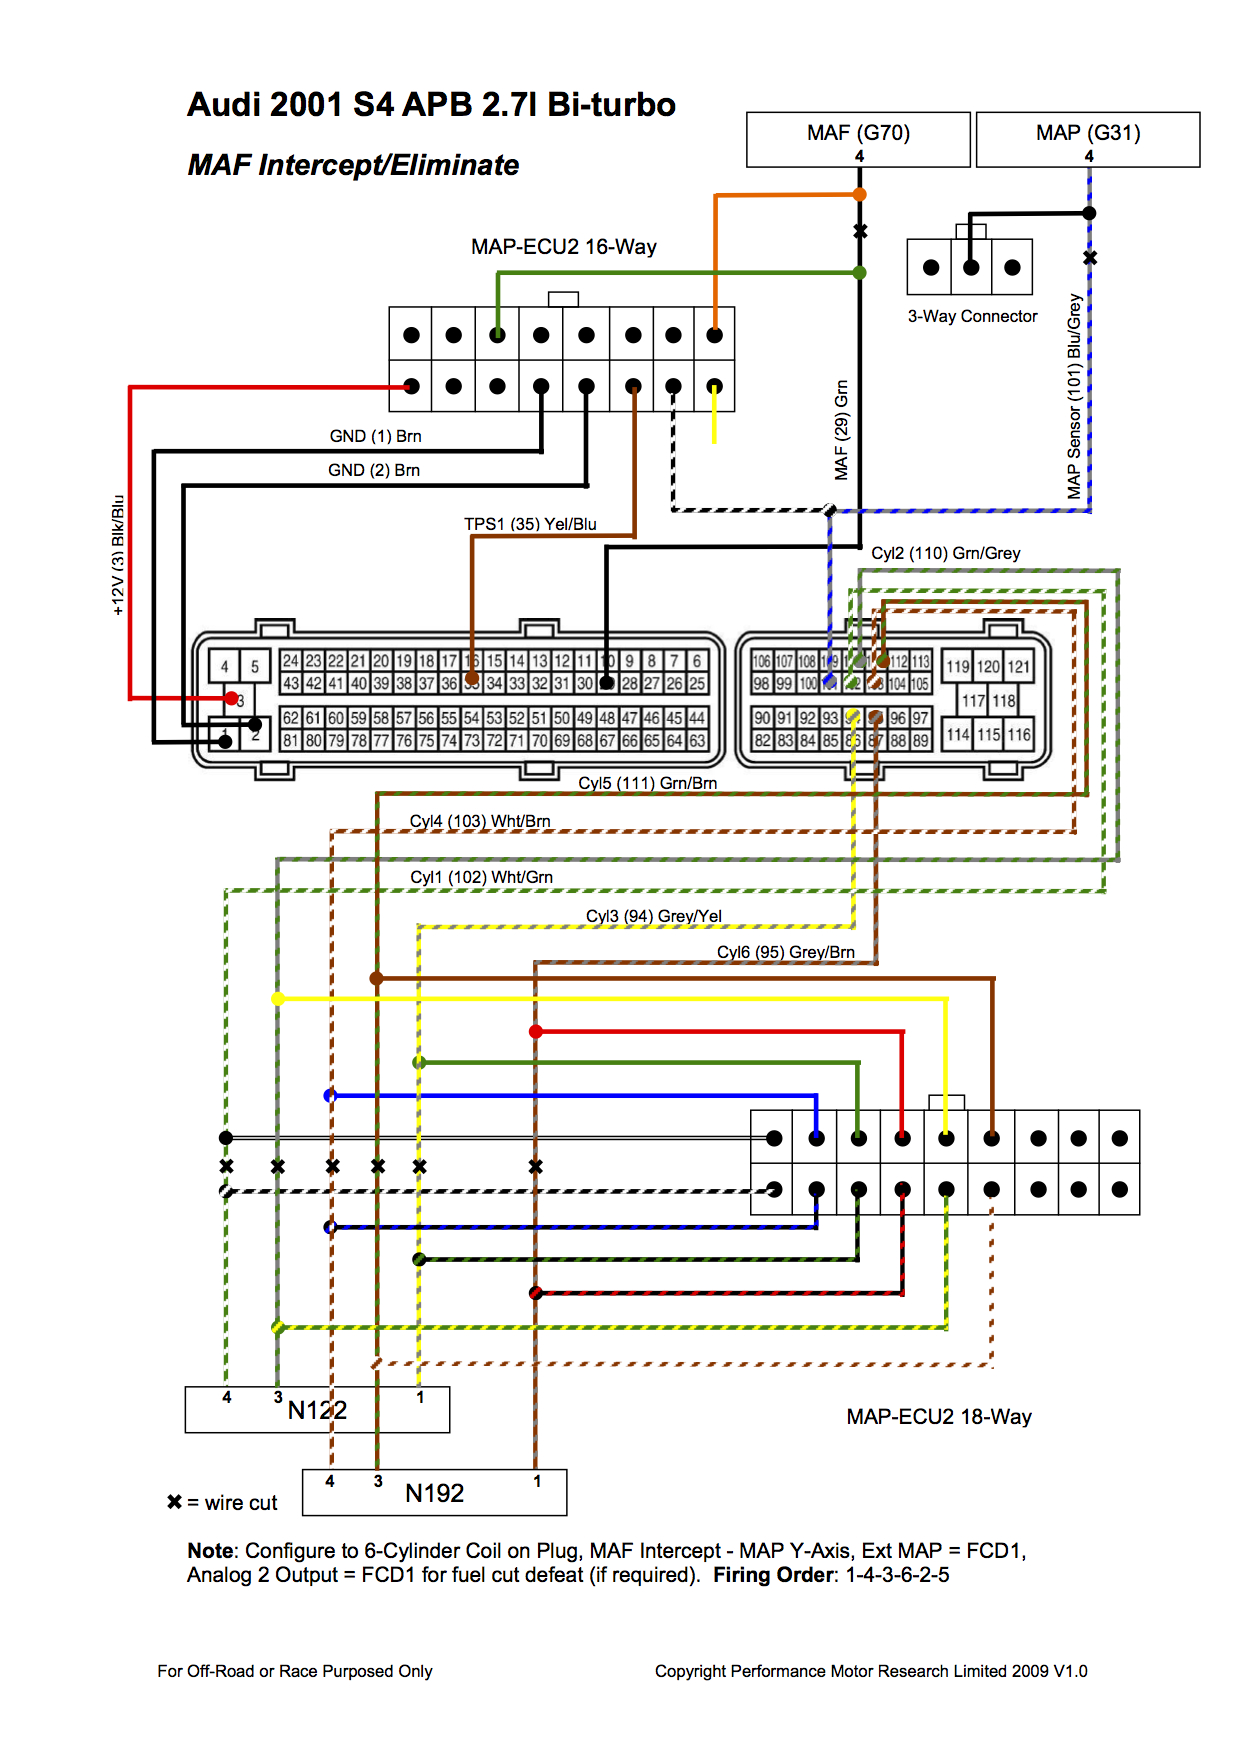 Audi S4 20011 ecu wiring diagram paccar ecu wiring diagram \u2022 wiring diagrams j toyota radio wiring diagrams color code at soozxer.org